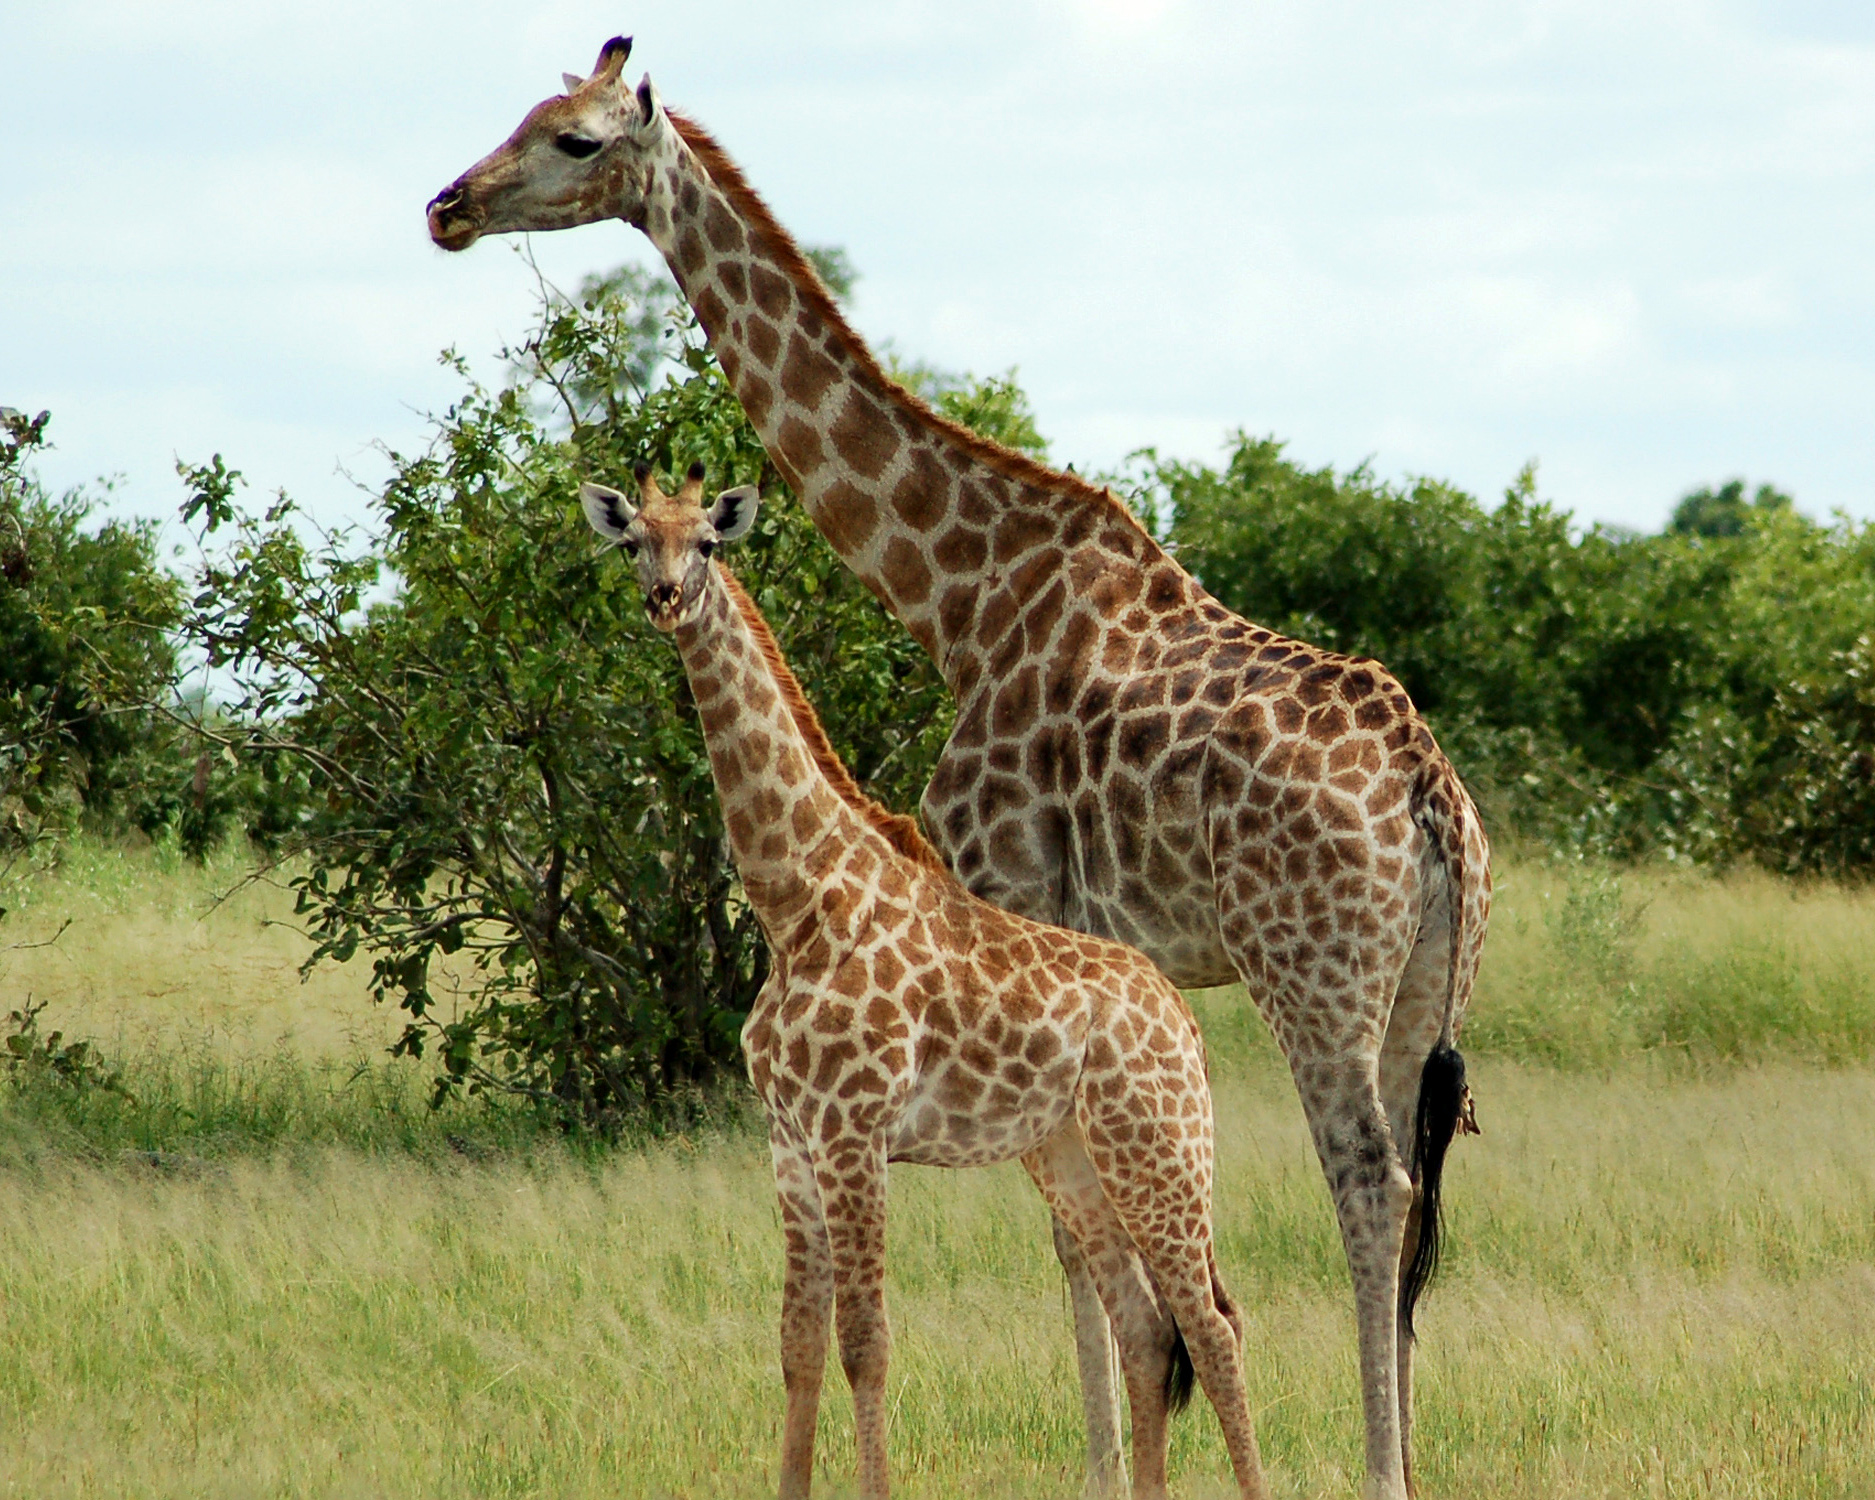 Giraffe with kid